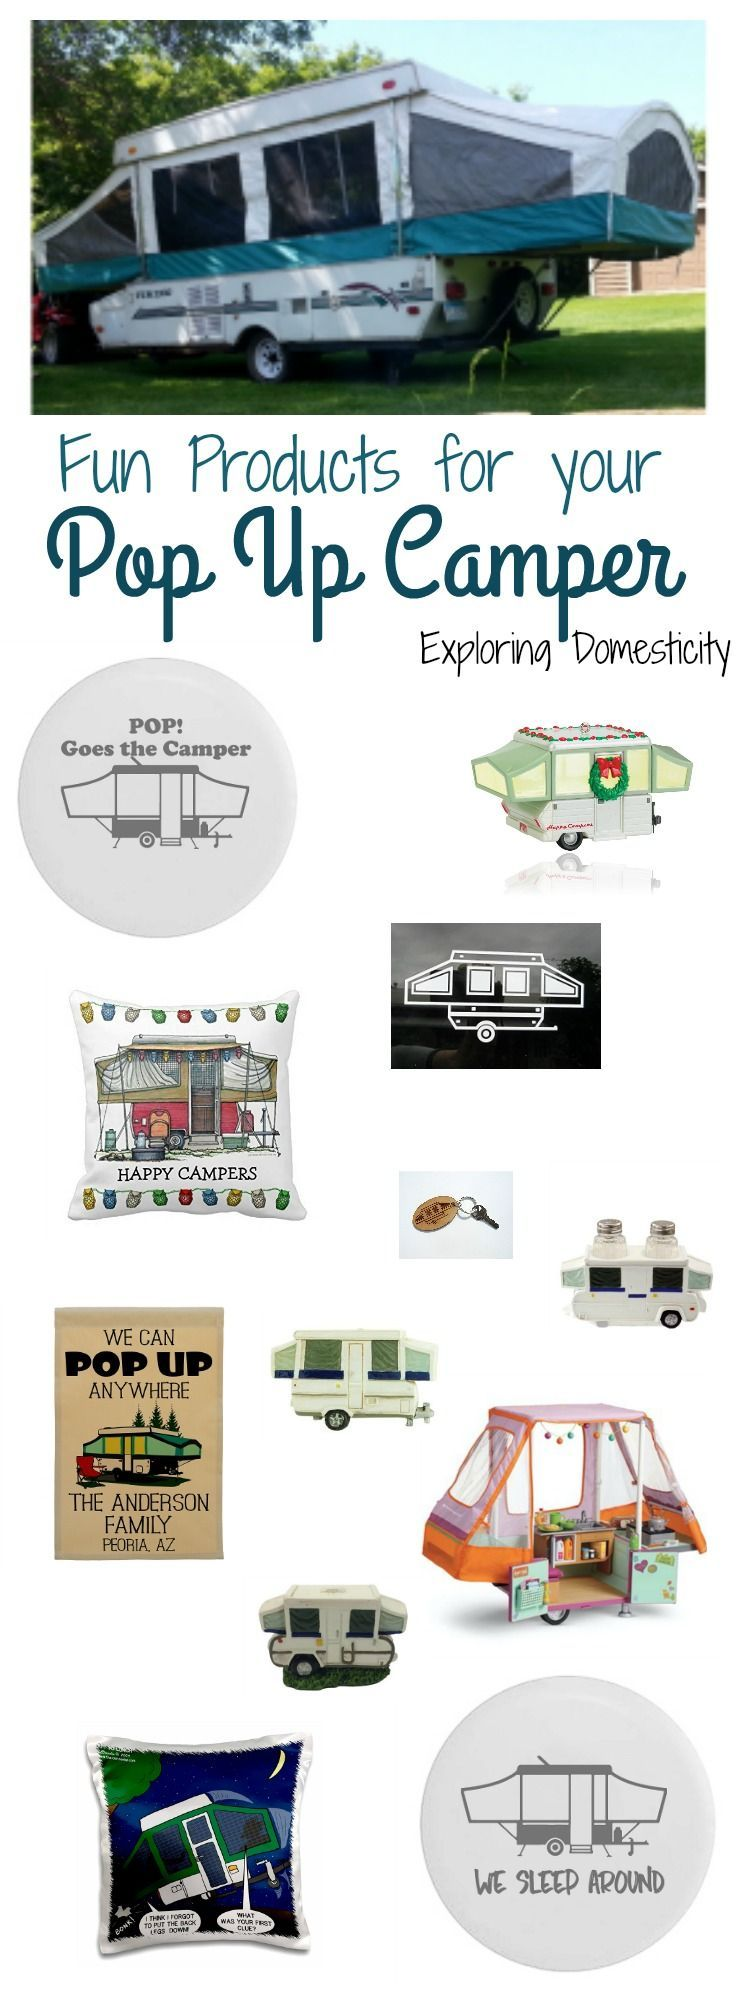 Fun pop up camper products - clothing, window stickers, pillow covers, camp signs, Christmas ornaments, etc.  Popup camper   tent trailer   pop-up camper  #popupcamper #tenttrailer #popupcamperremodel #camperremodel #camperproducts